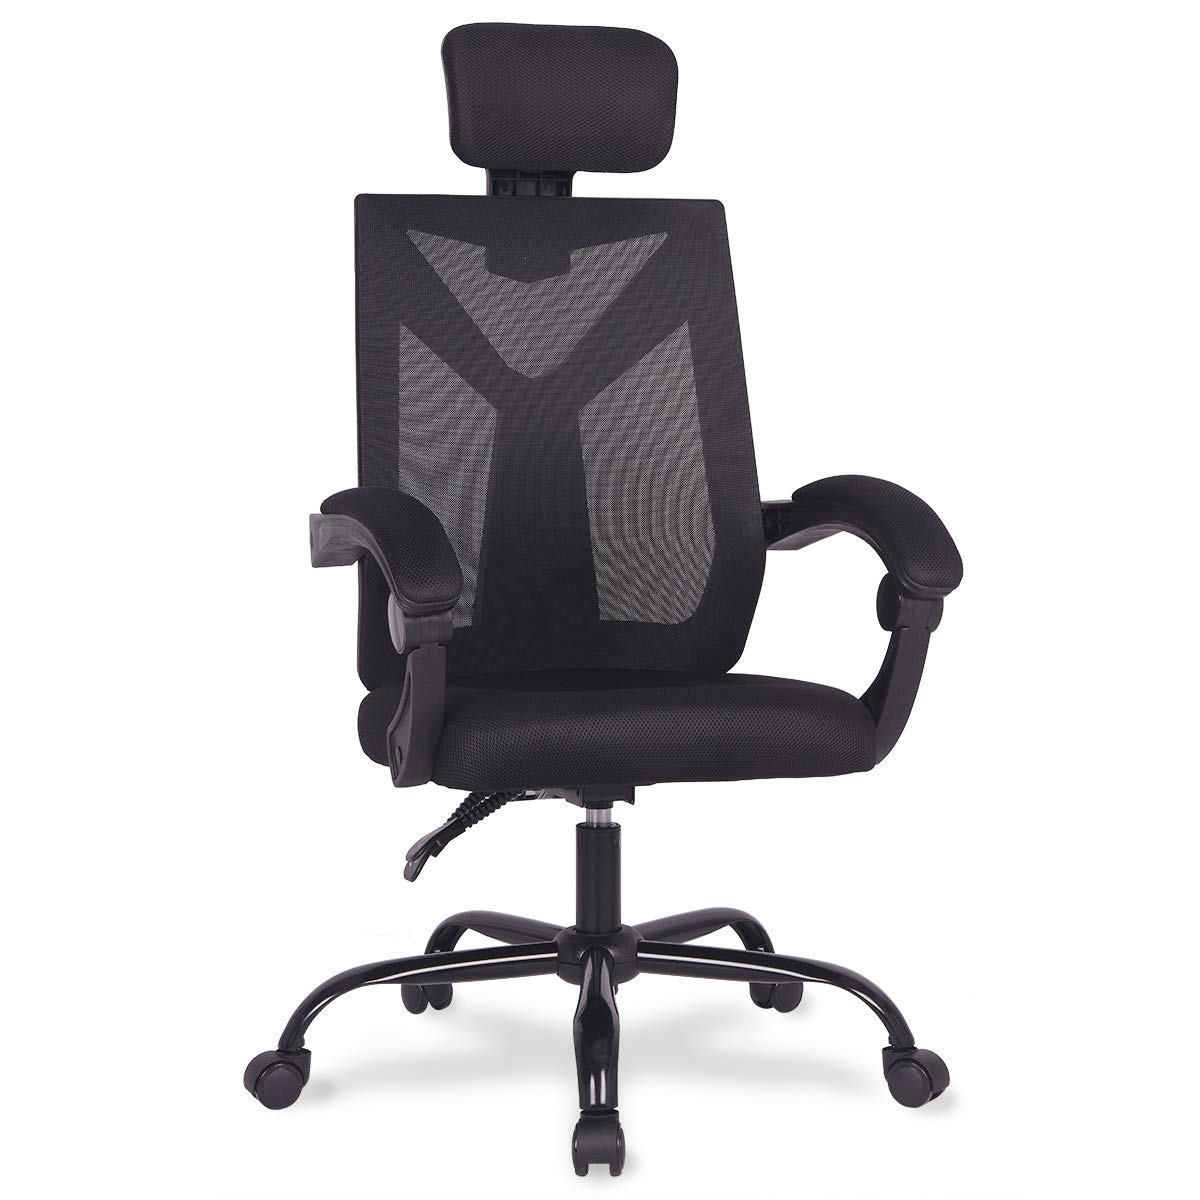 Marvelous Top 8 Best Office Chair Under 100 Ergonomic Chair Central Ibusinesslaw Wood Chair Design Ideas Ibusinesslaworg